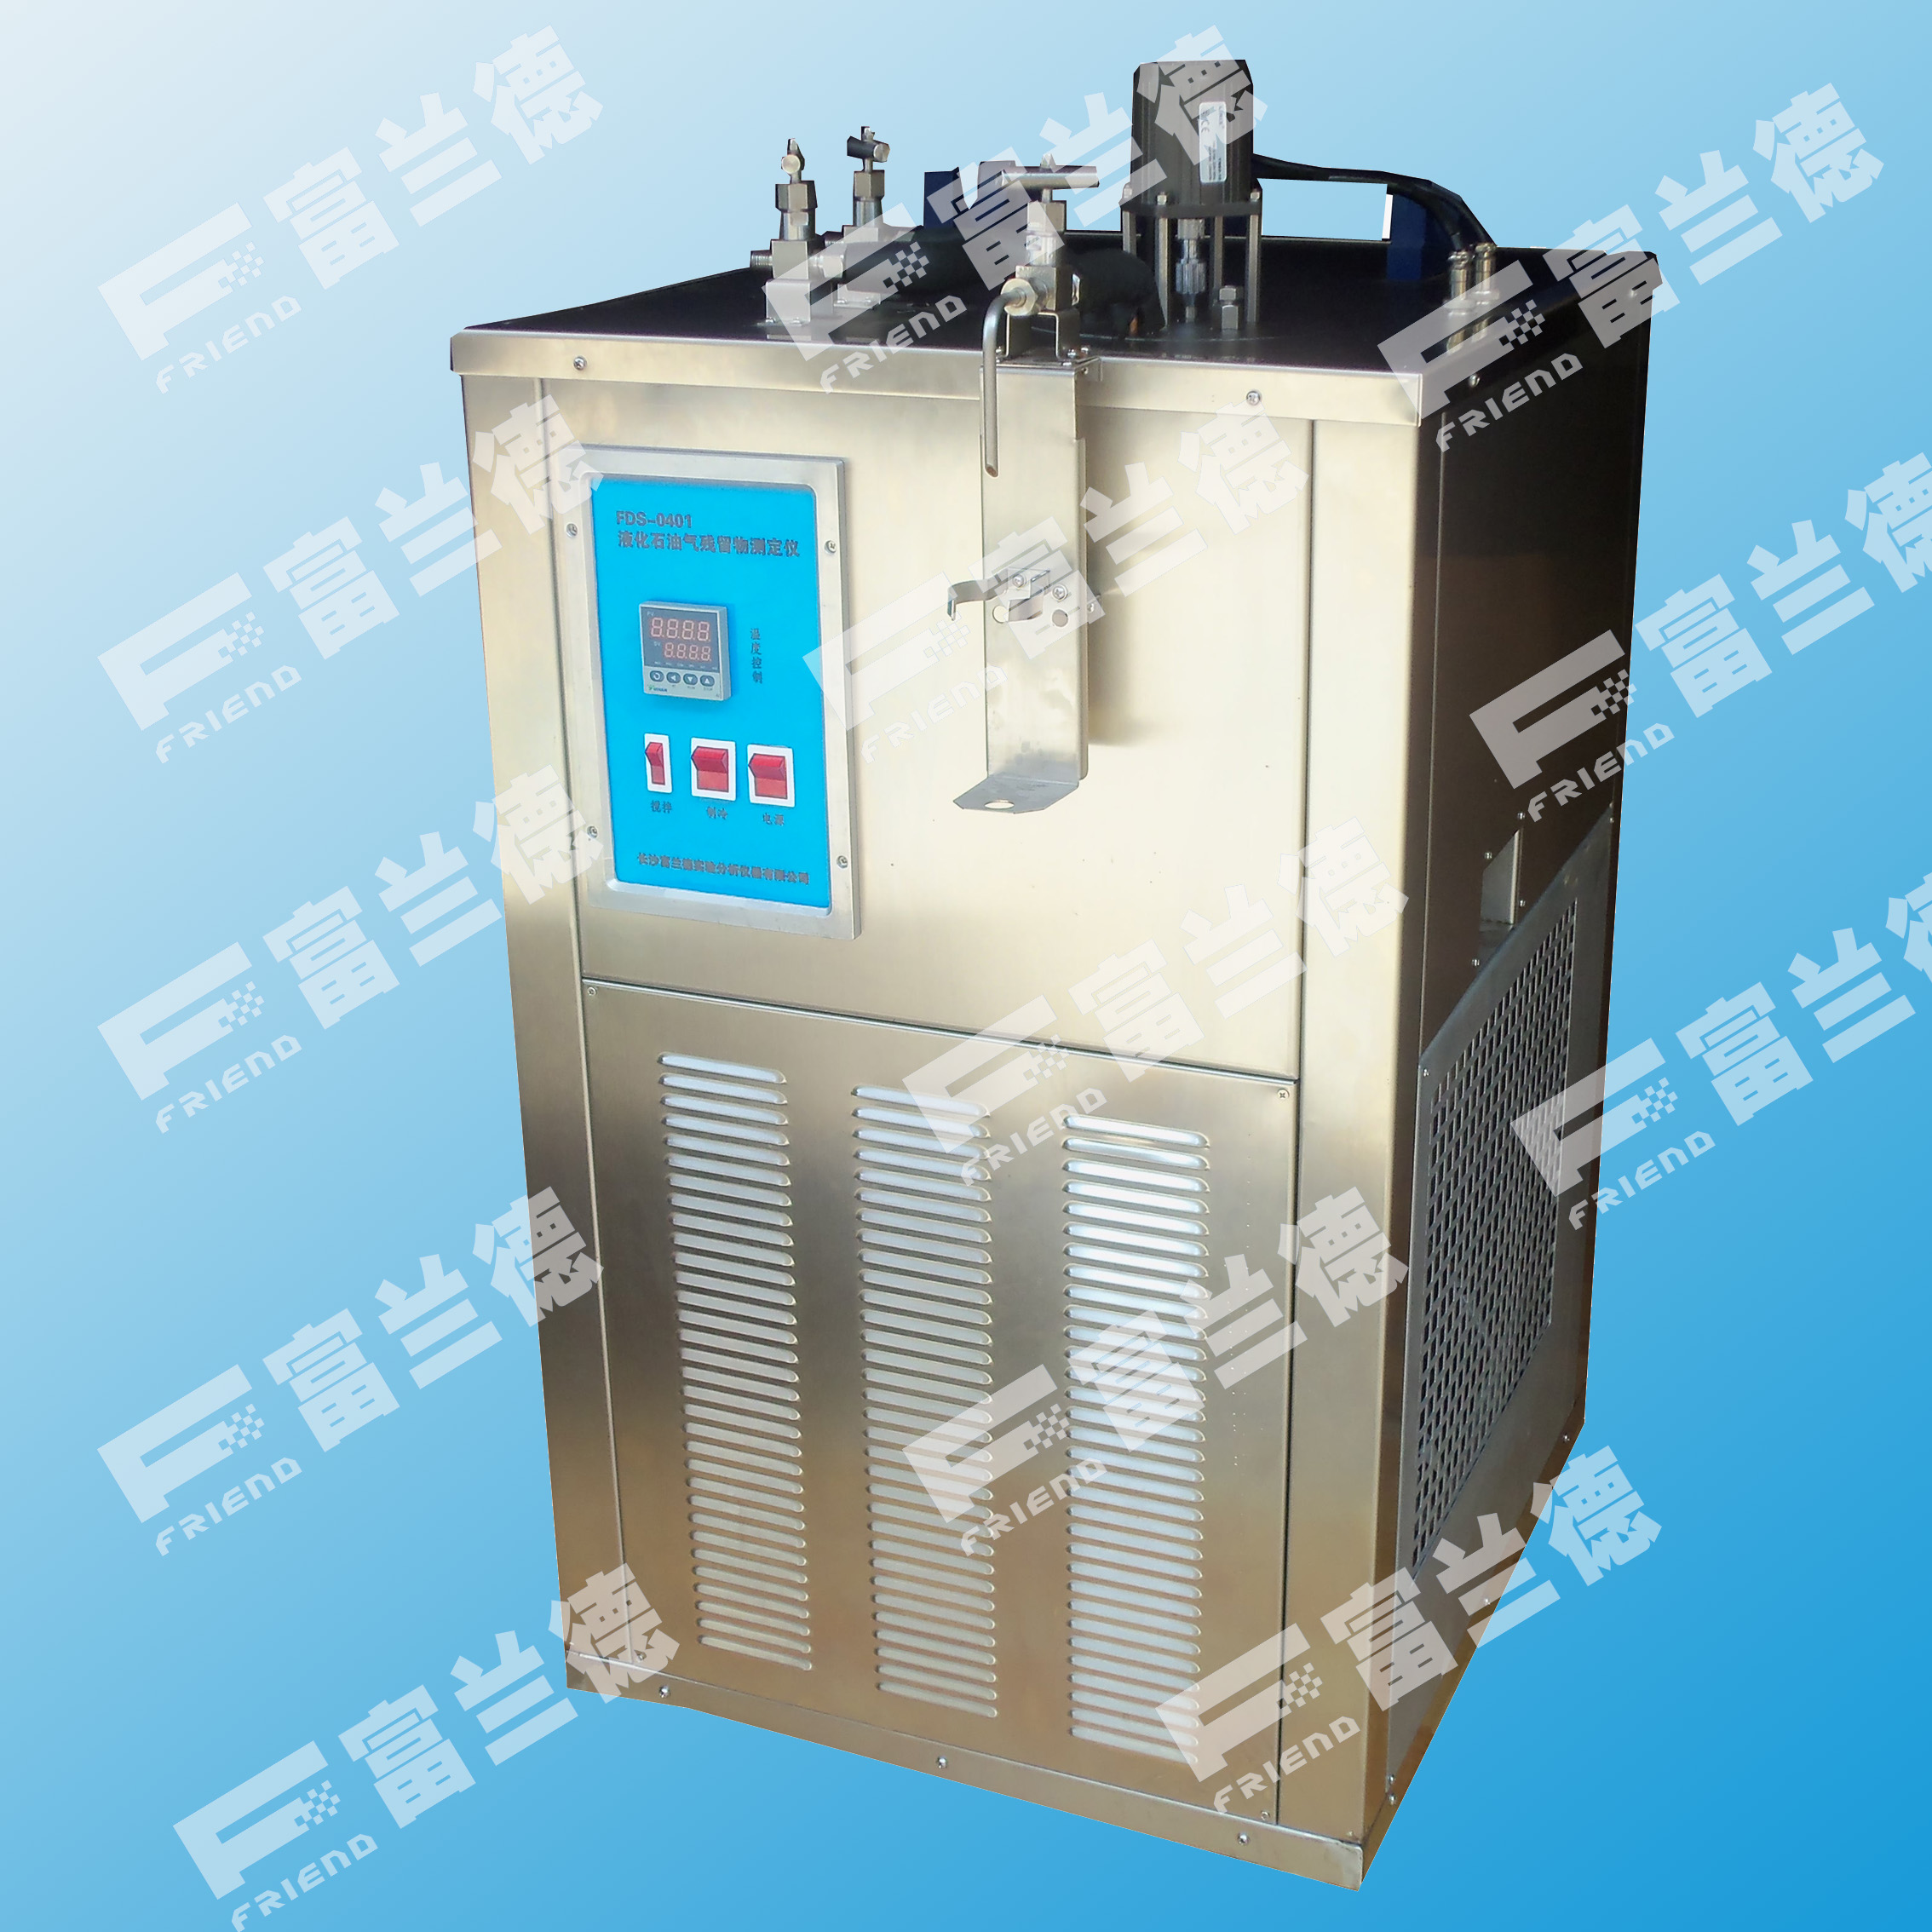 liquefied petroleum residues meter FDS-0401